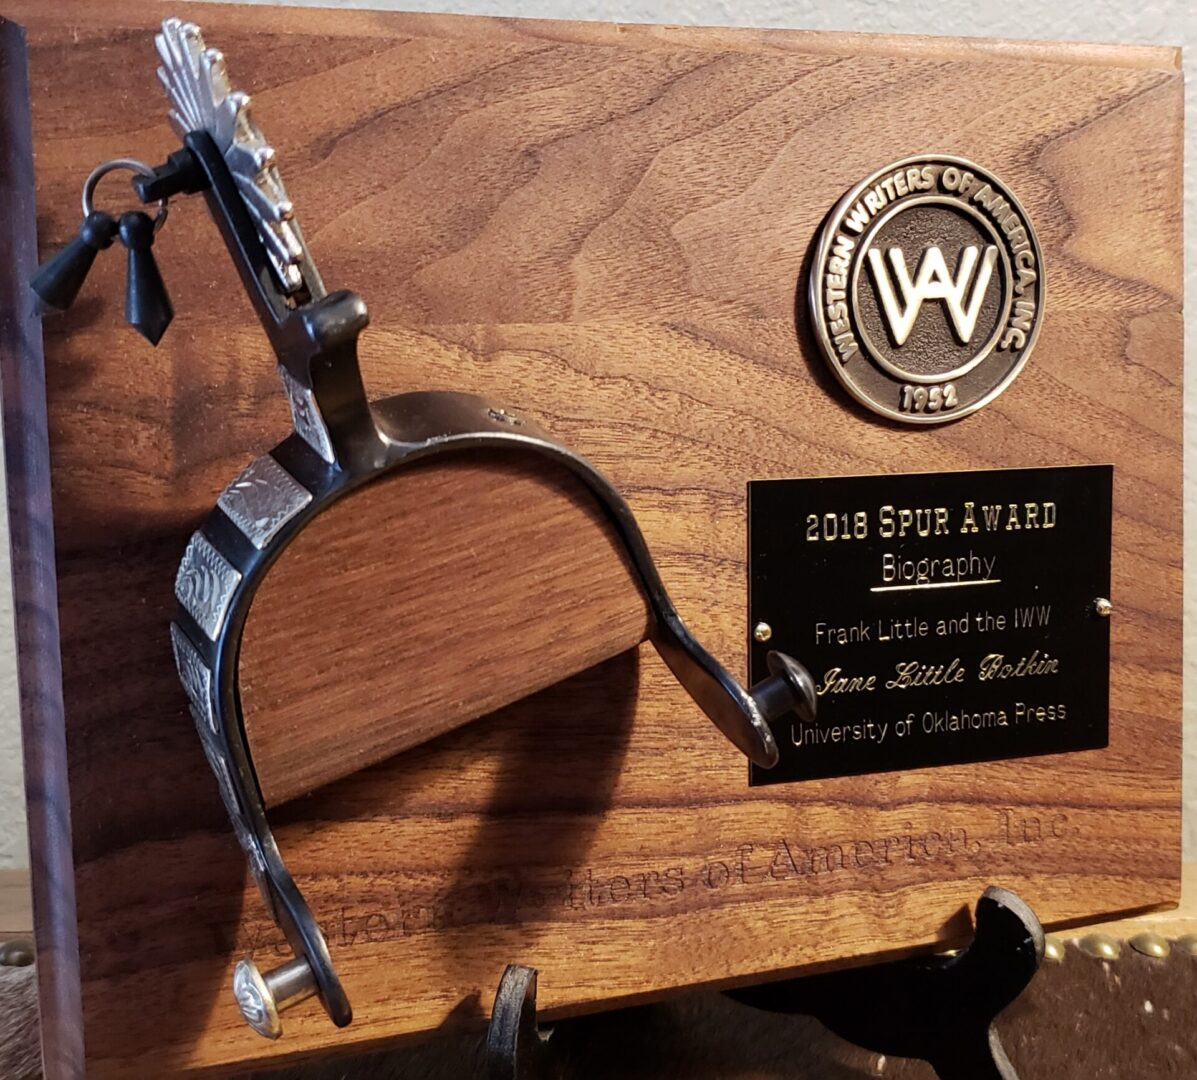 Wooden plaque, 2018 Spur Award, Biography given to Jane Little Botkin for Frank Little and the IWW